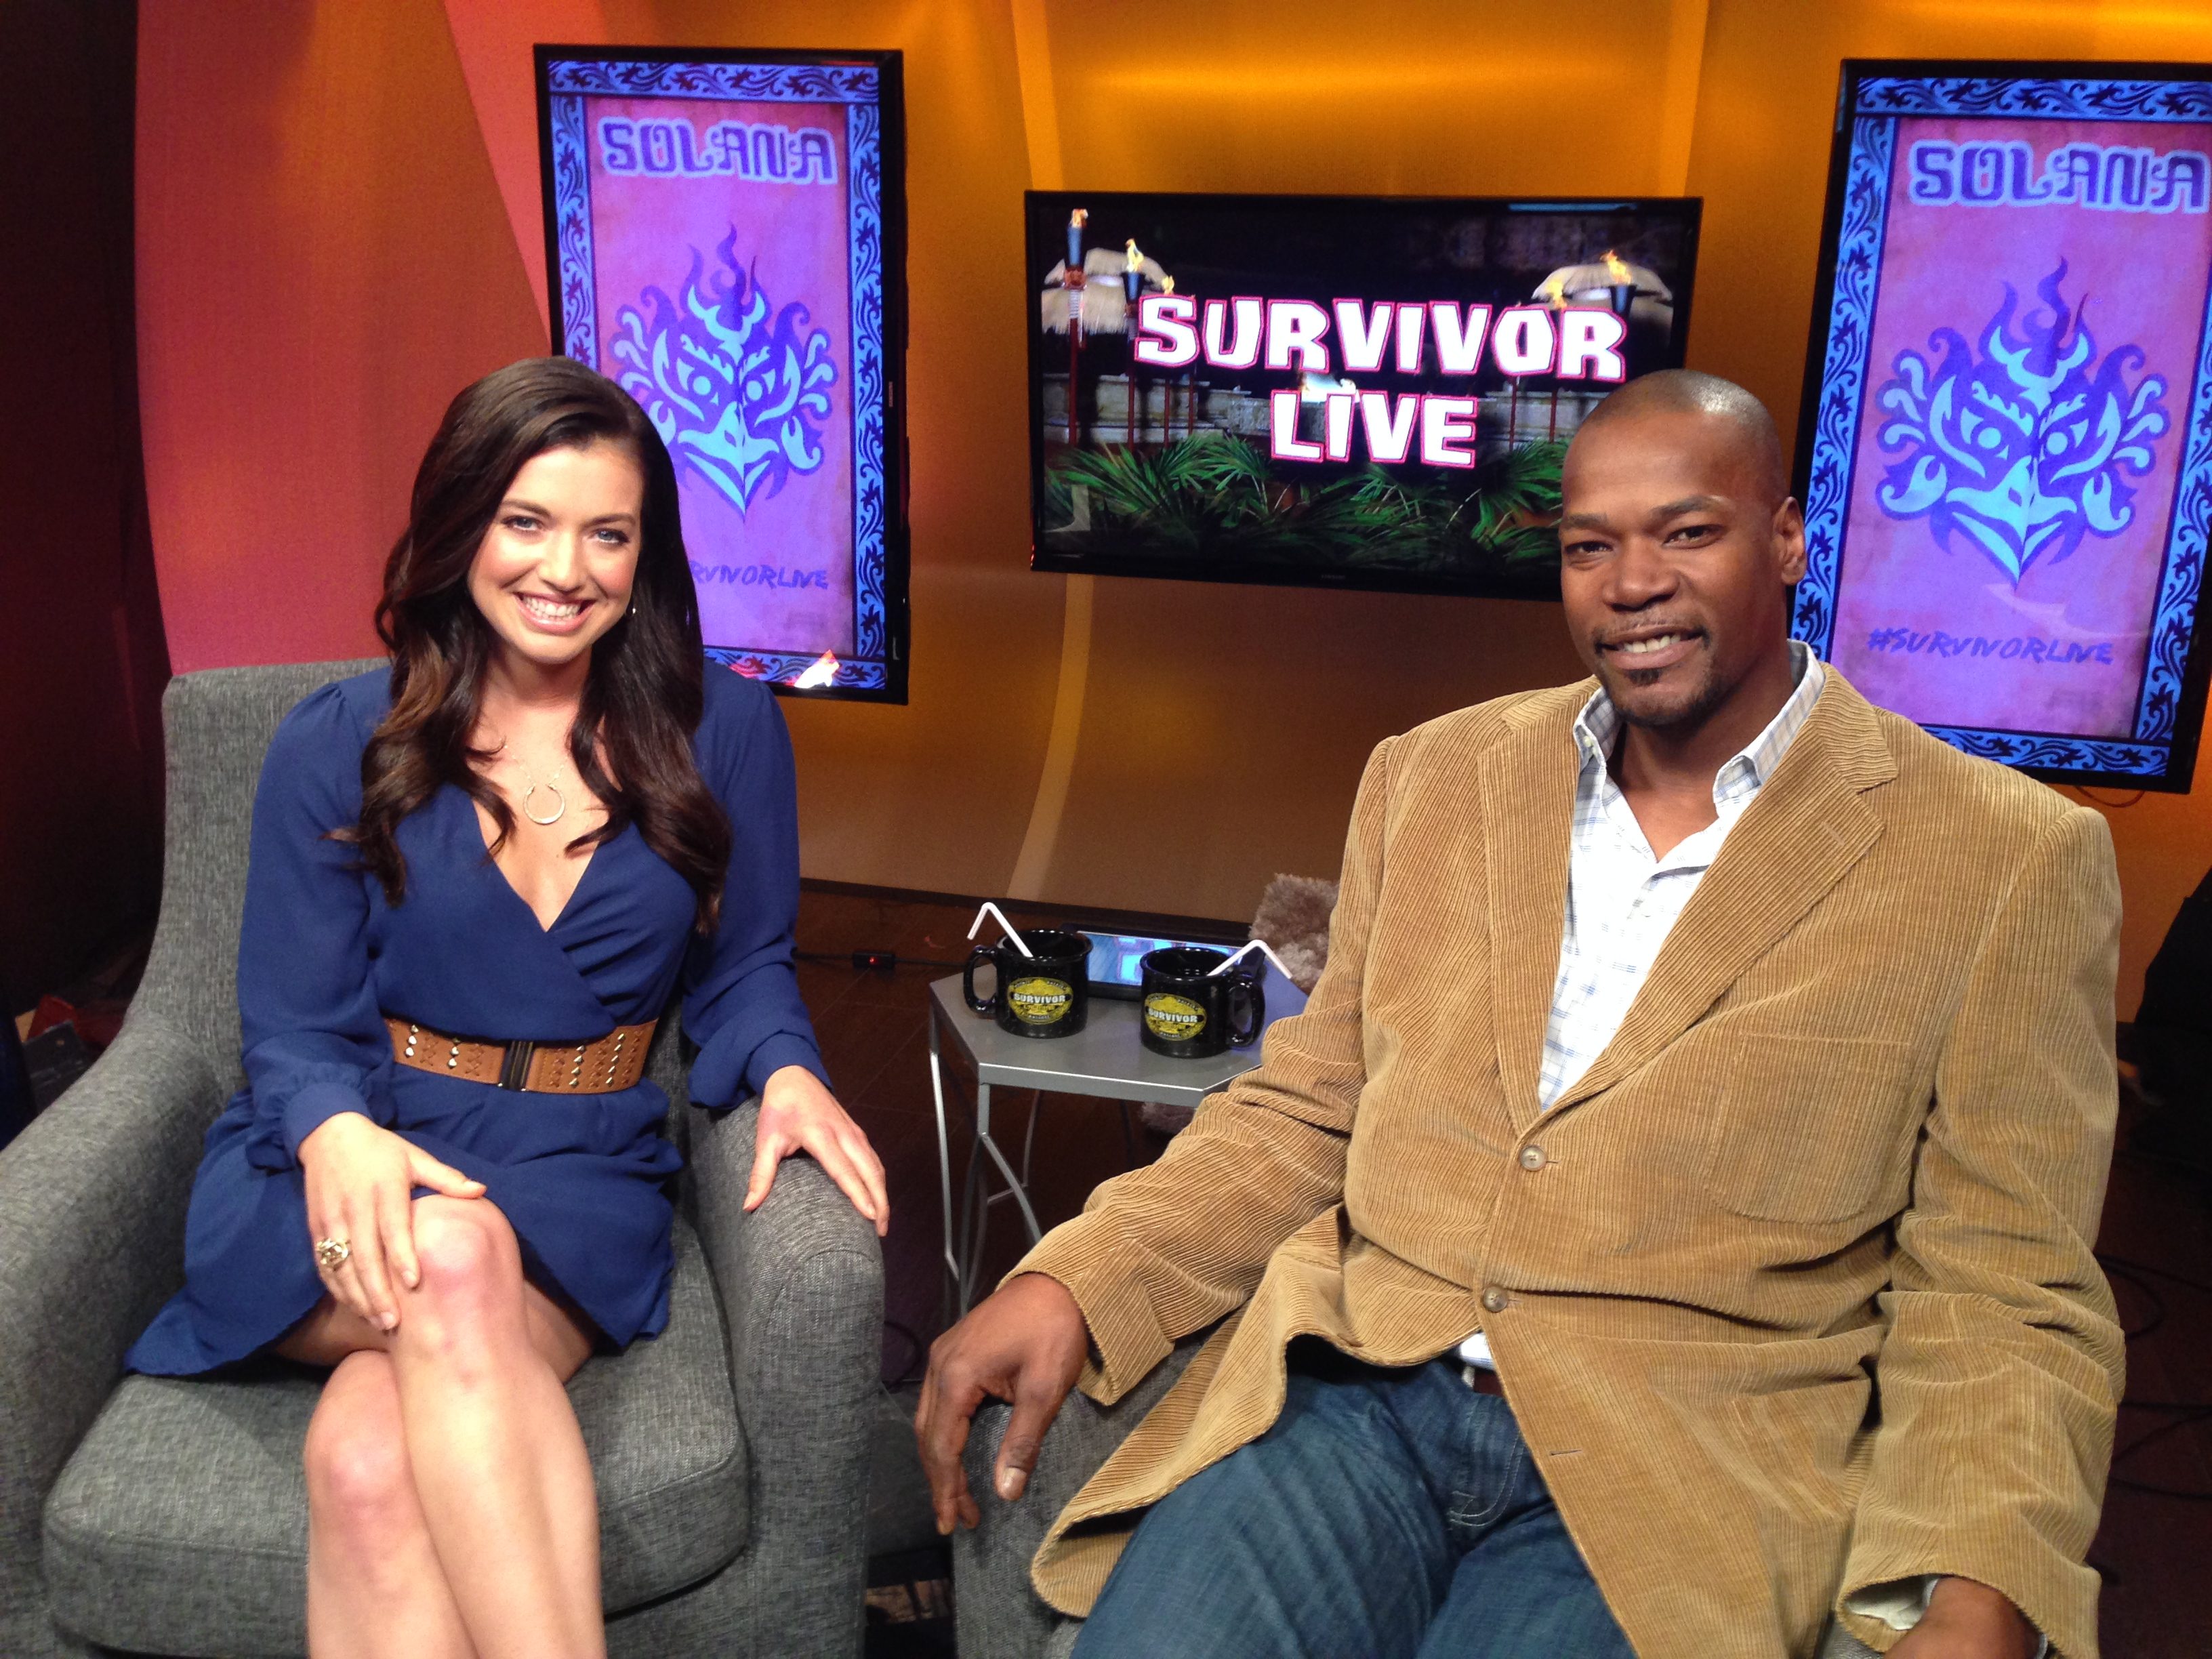 Cliff visits Survivor Live